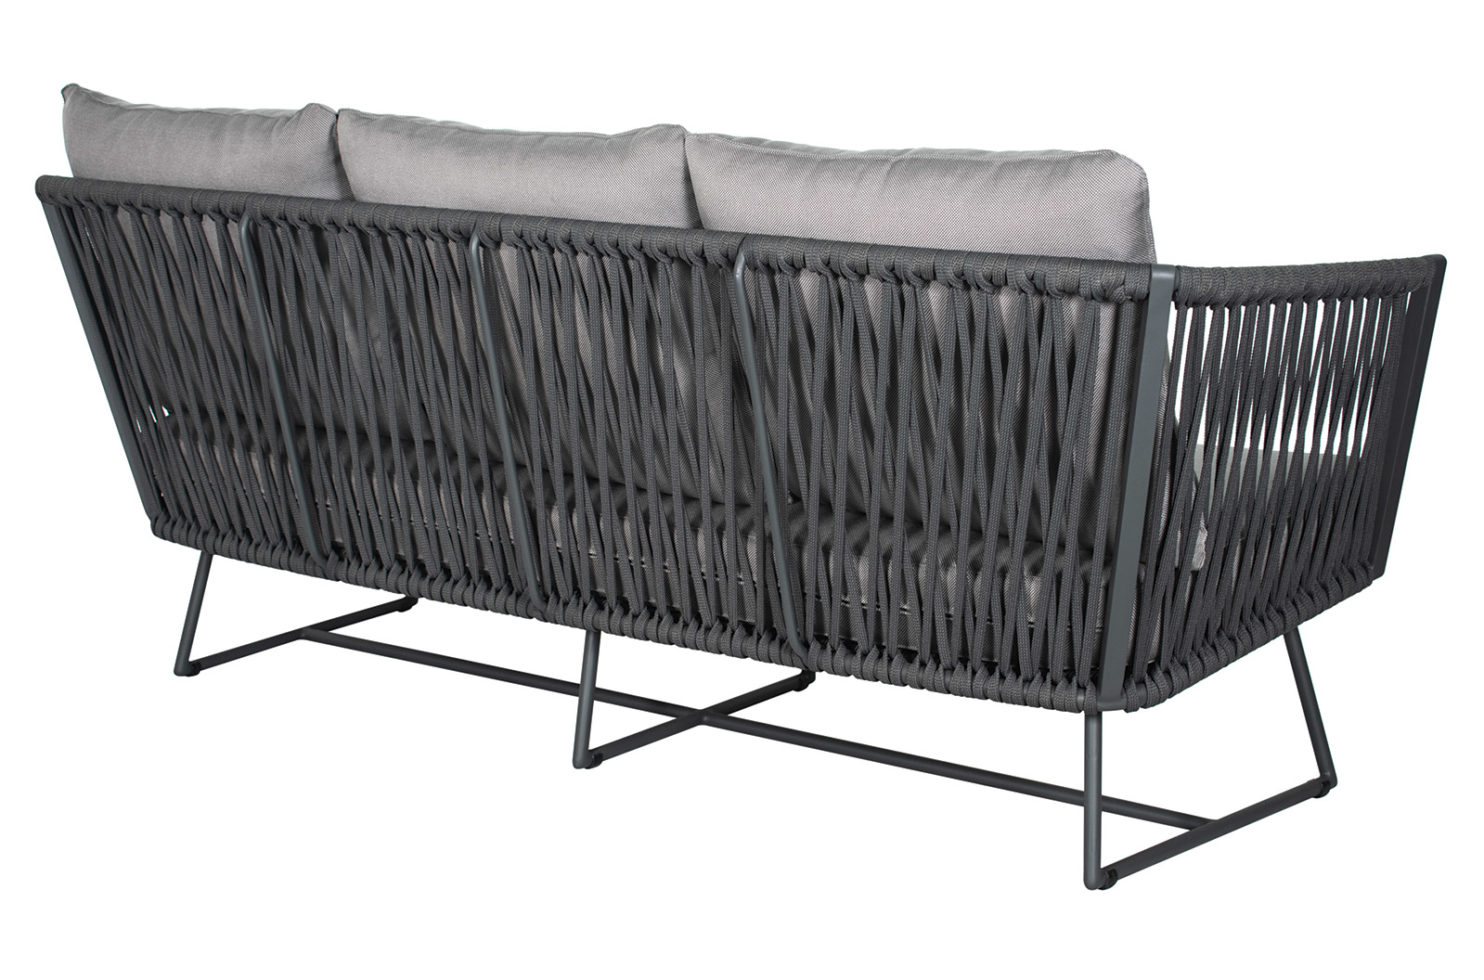 Archipelago orion sofa 620FT081P2DGP 1 3Q back